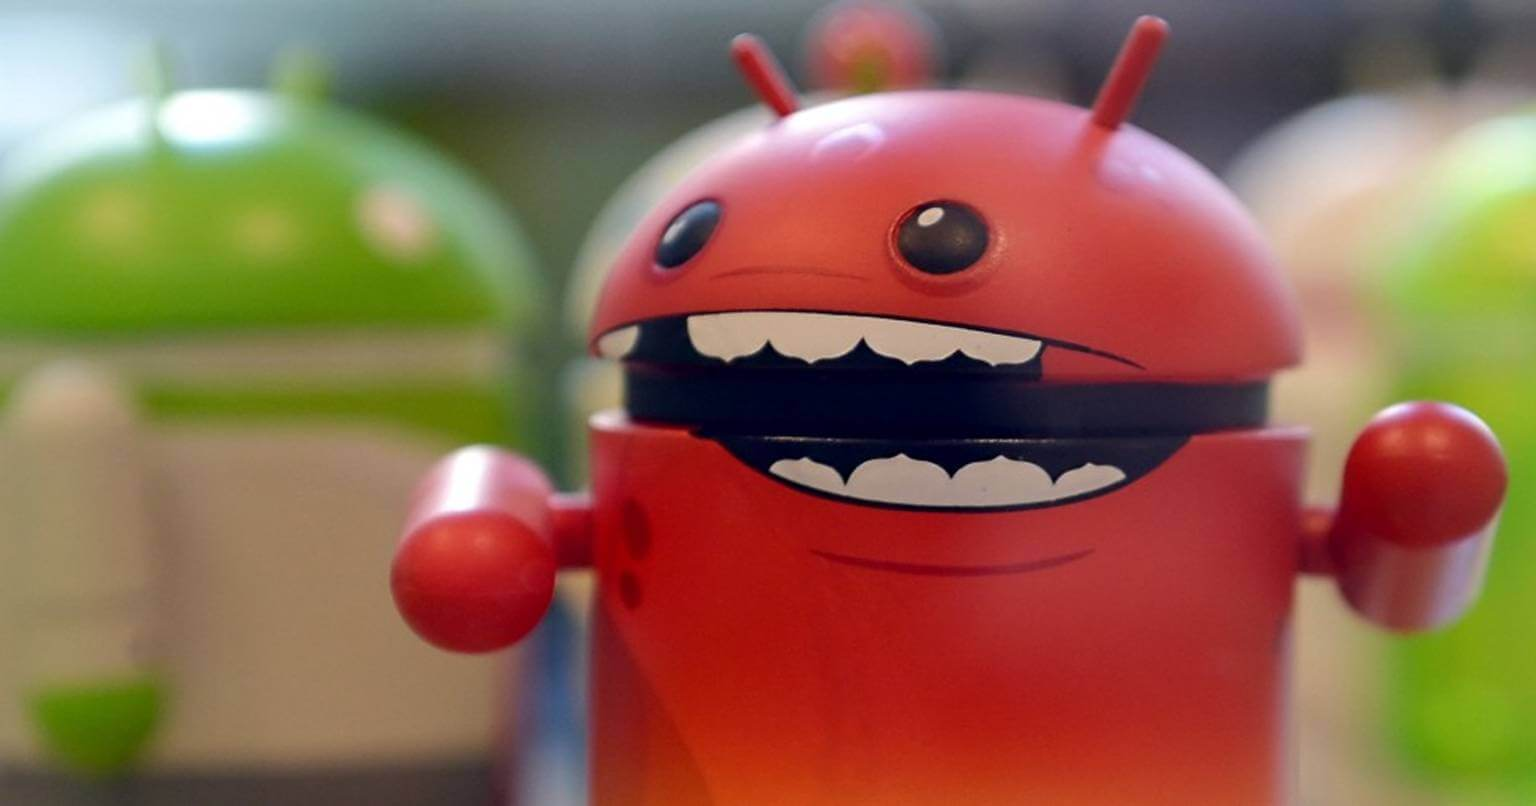 Google Play Store : une cinquantaine d'applications avec un adware